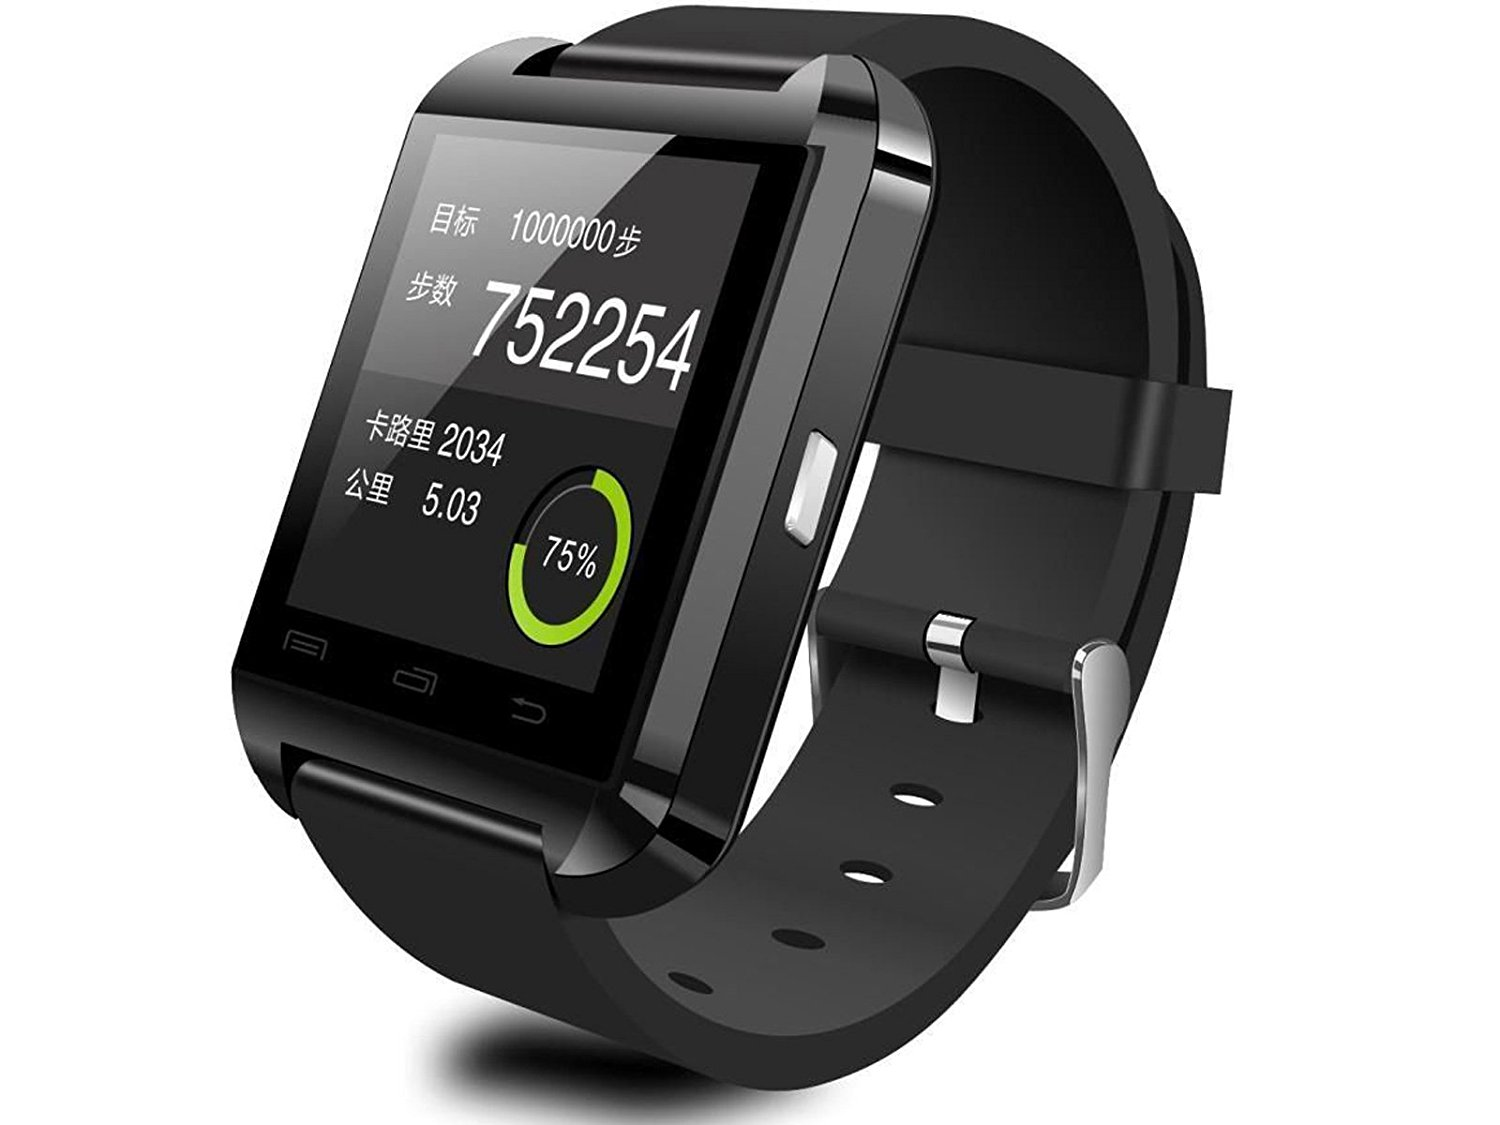 Homego Bluetooth Wrist Smart Watch Phone Mate Handsfree Call